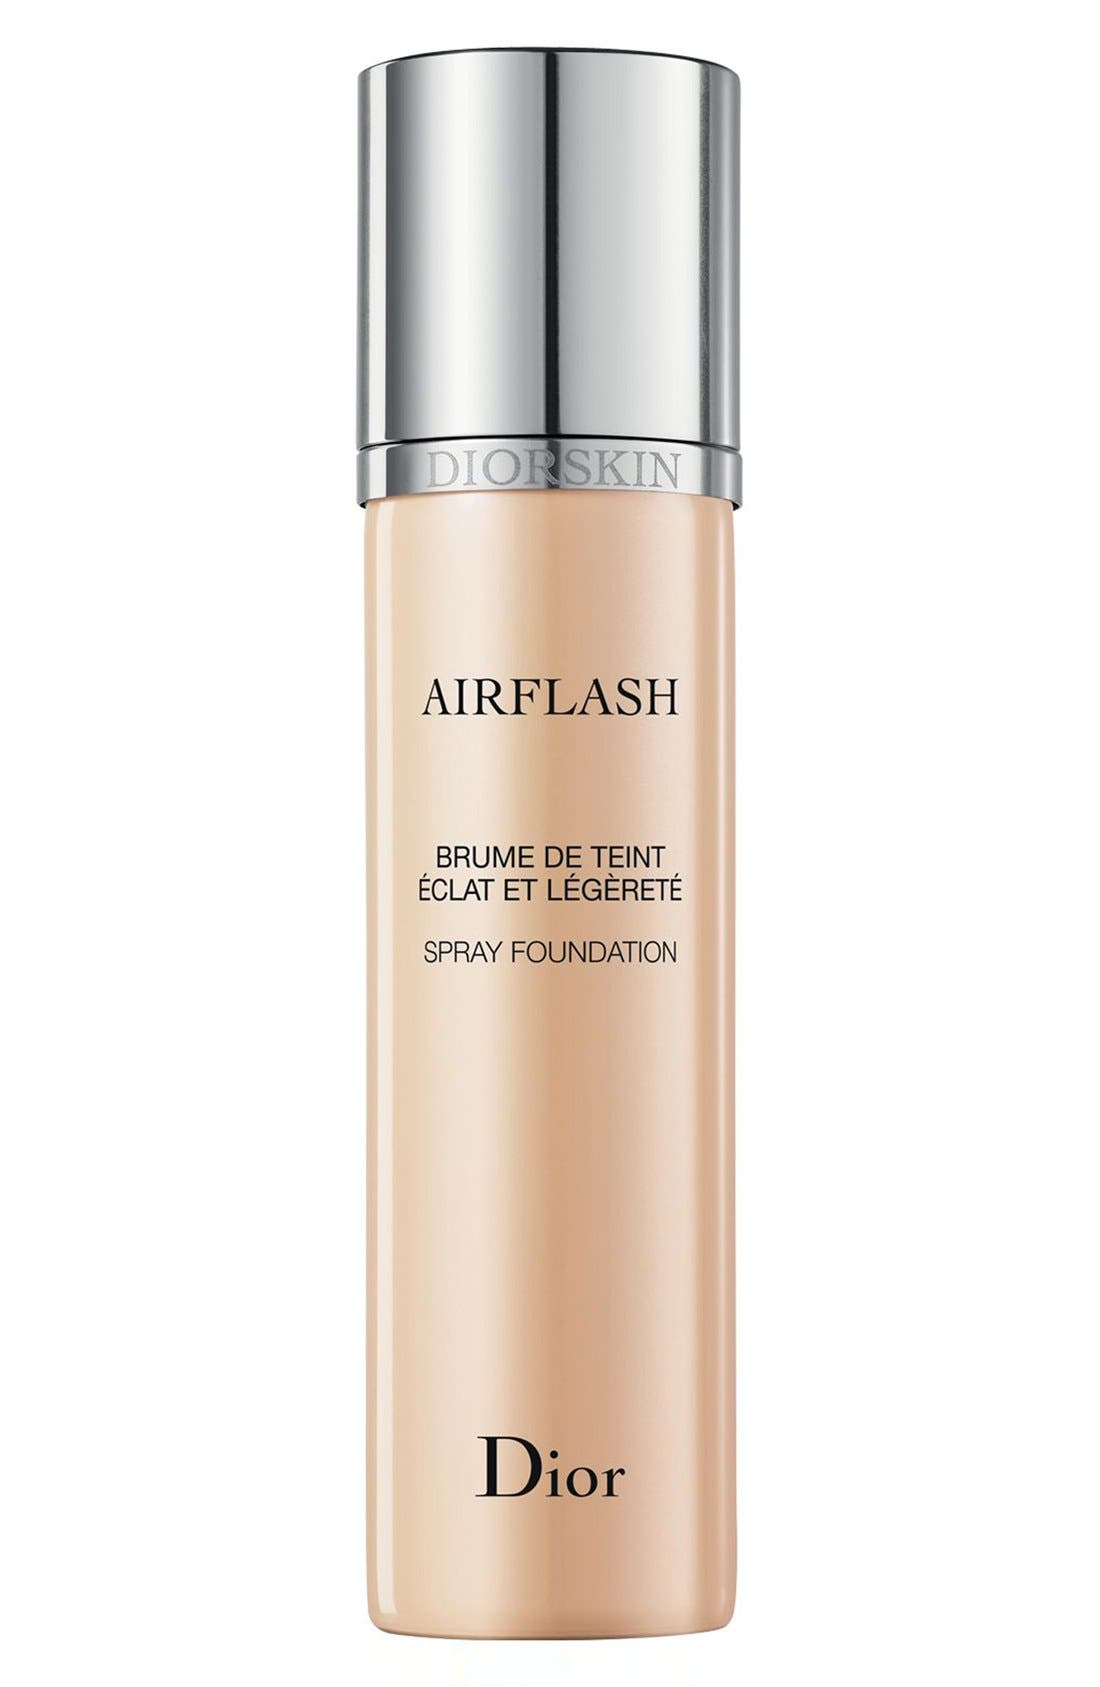 'Diorskin Airflash' Spray Foundation,                             Main thumbnail 1, color,                             000